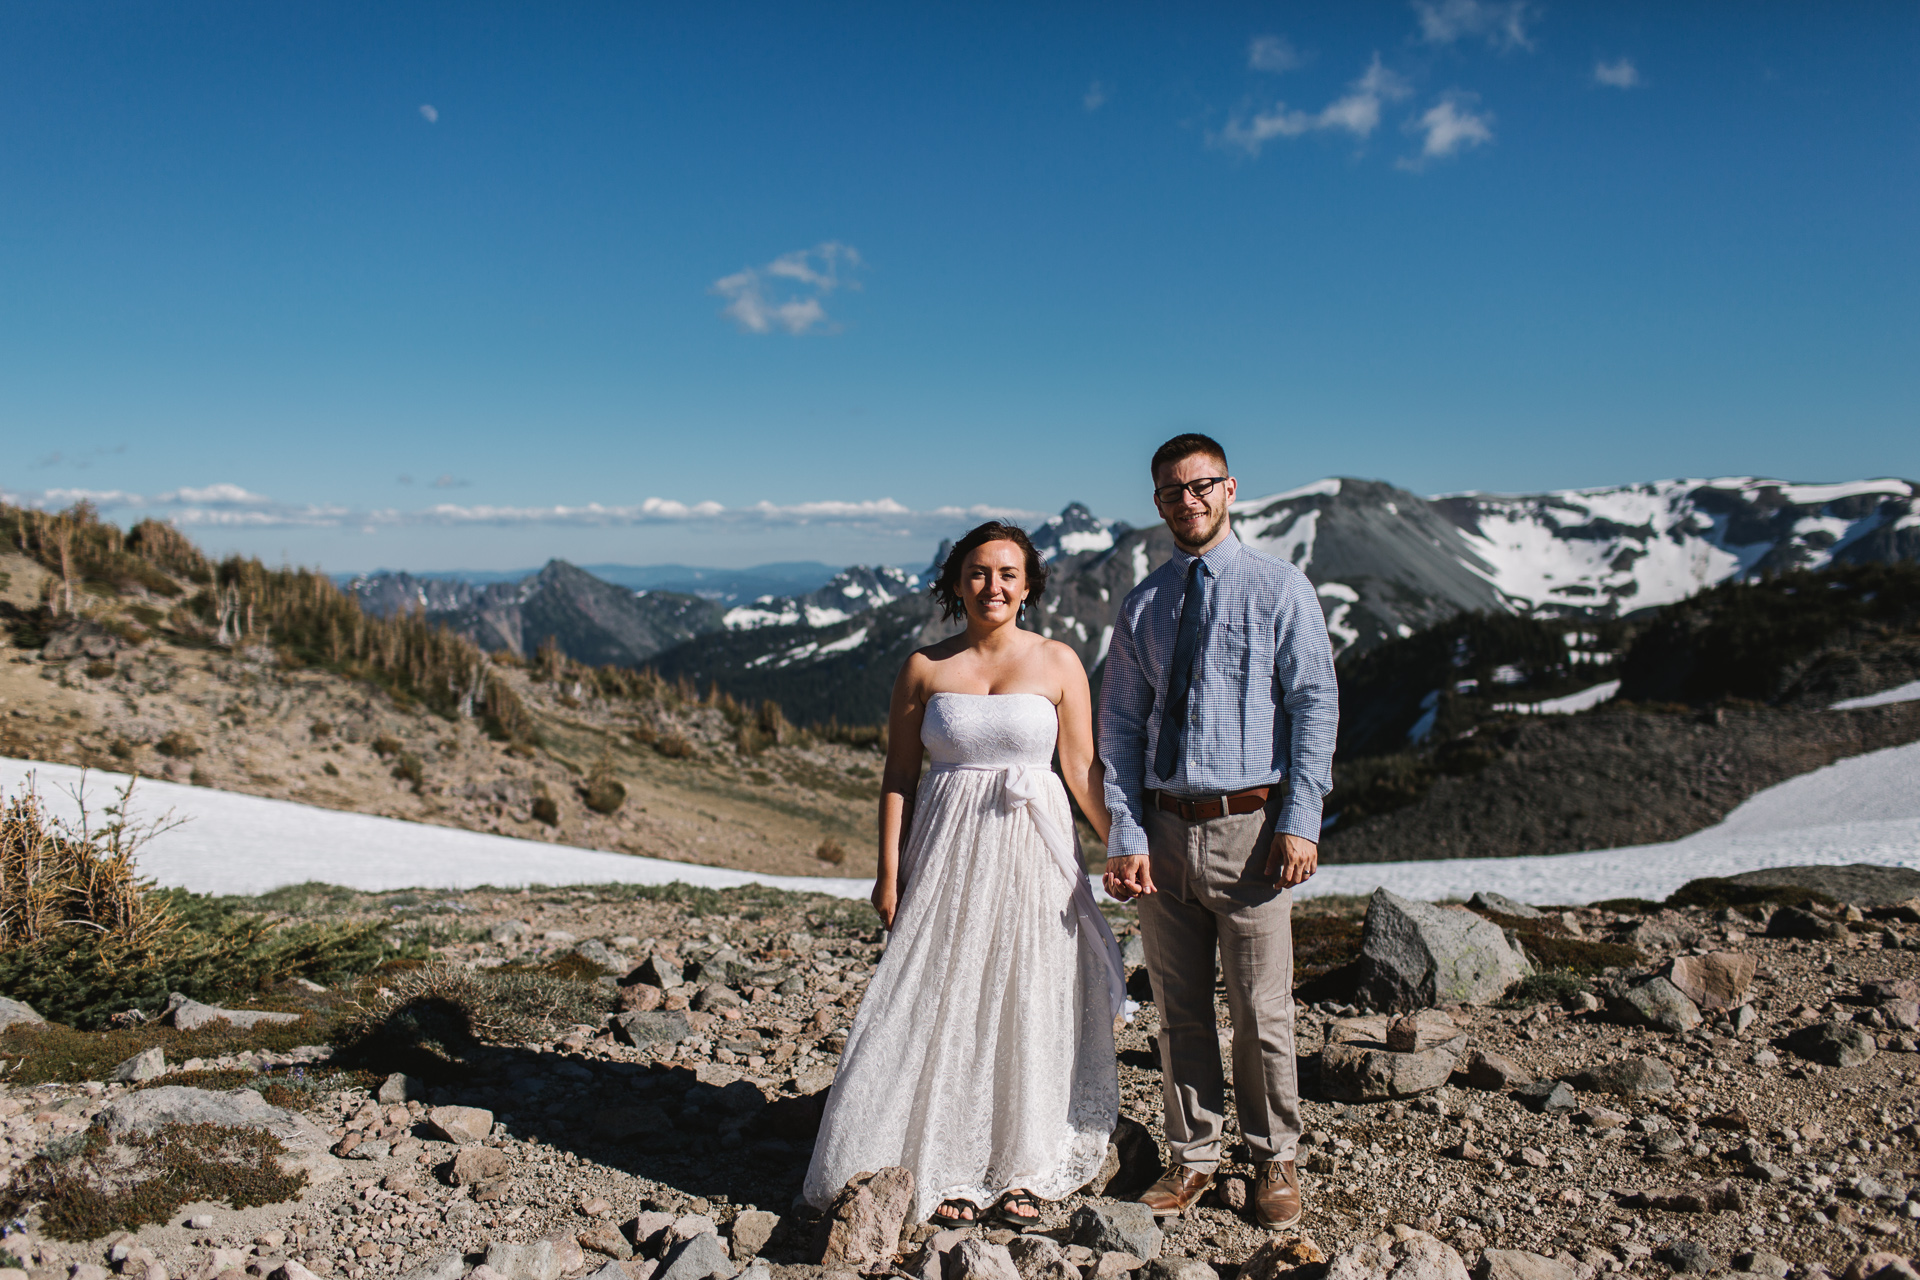 jess-hunter-photography-mt-rainier-elopement-photographer-seattle-washington-wedding-photographer--3919.jpg